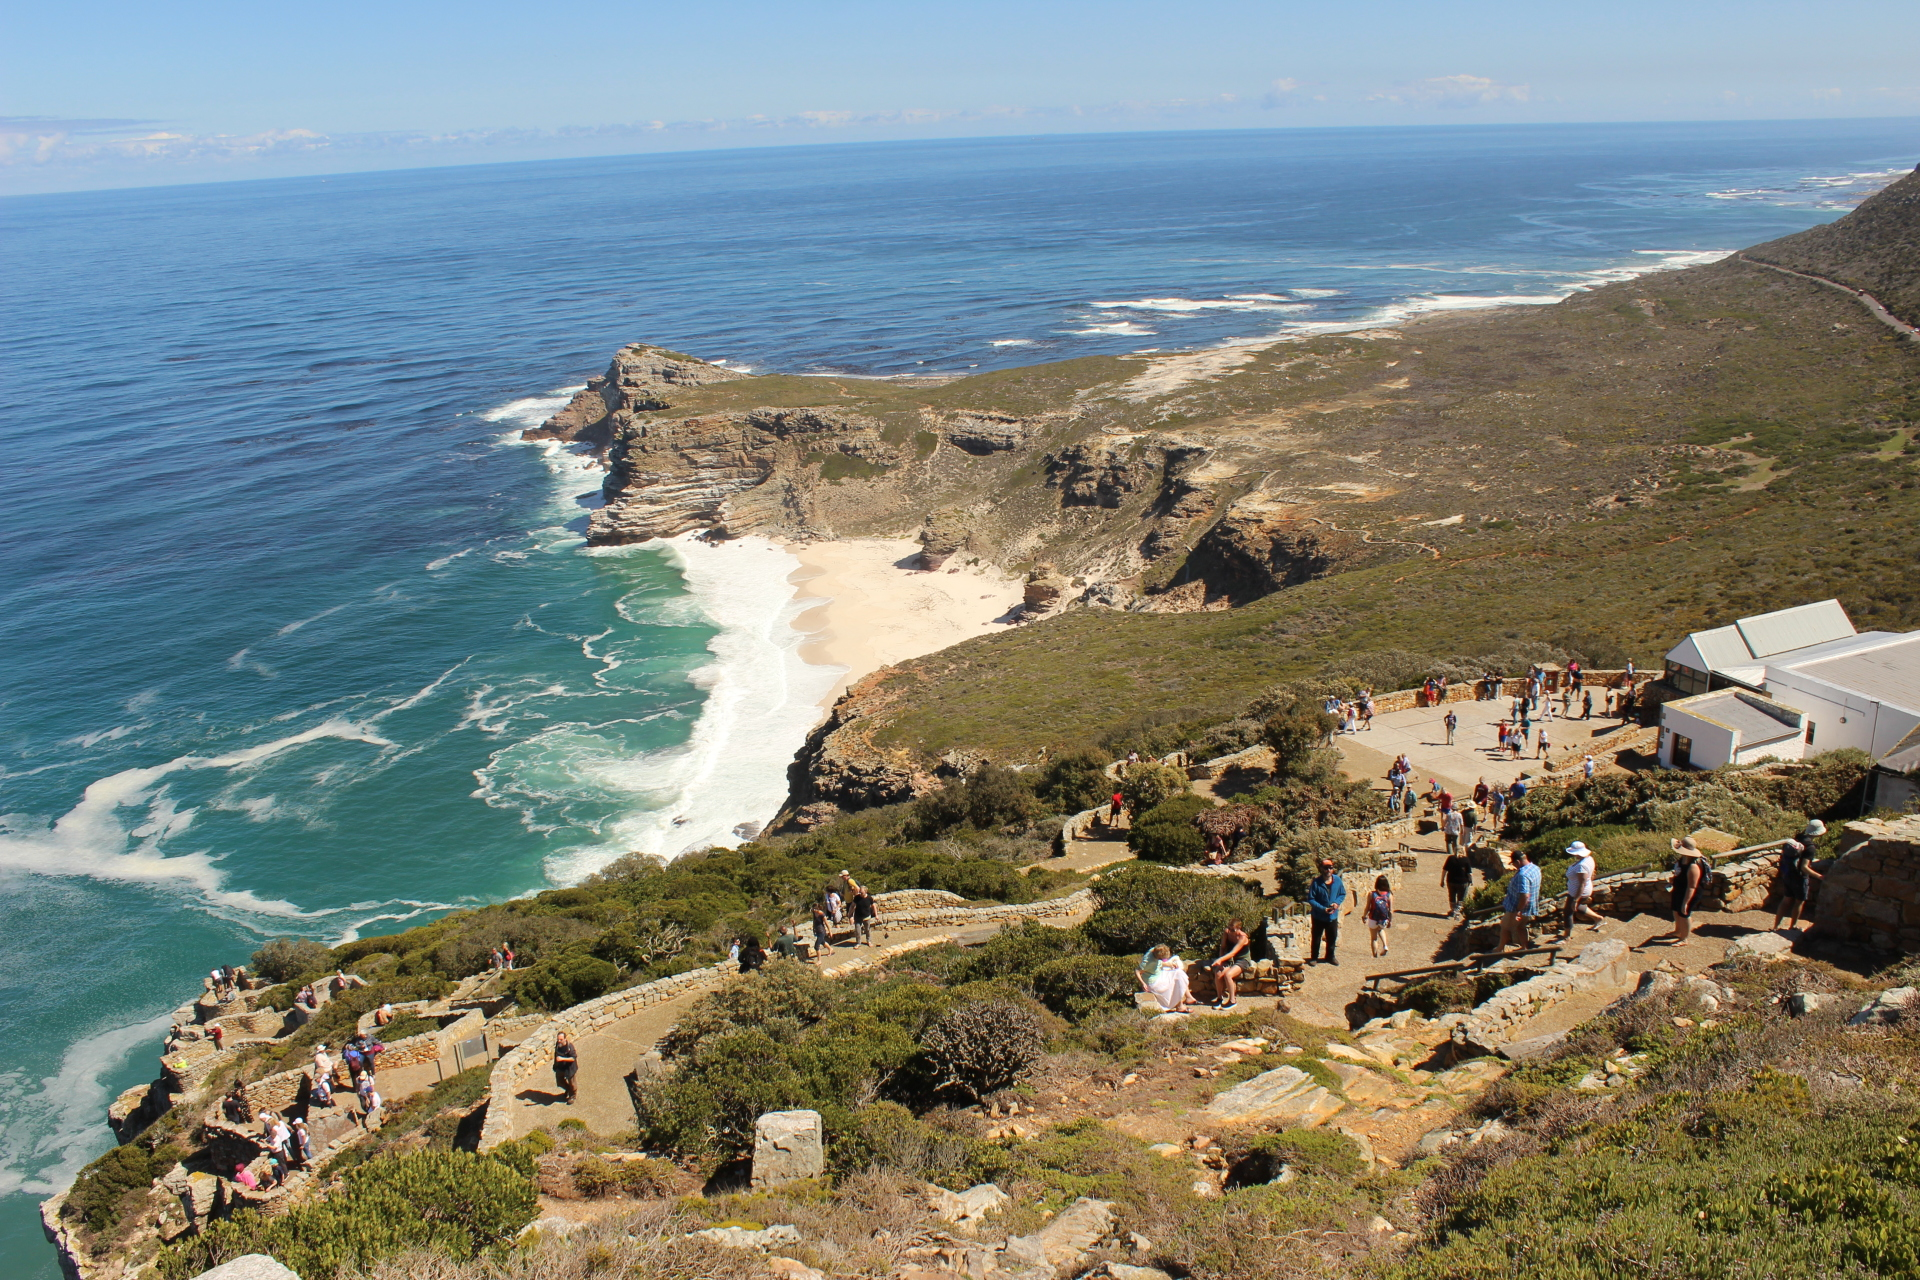 2018 South Africa Trip, Part 12: The Cape of Good Hope